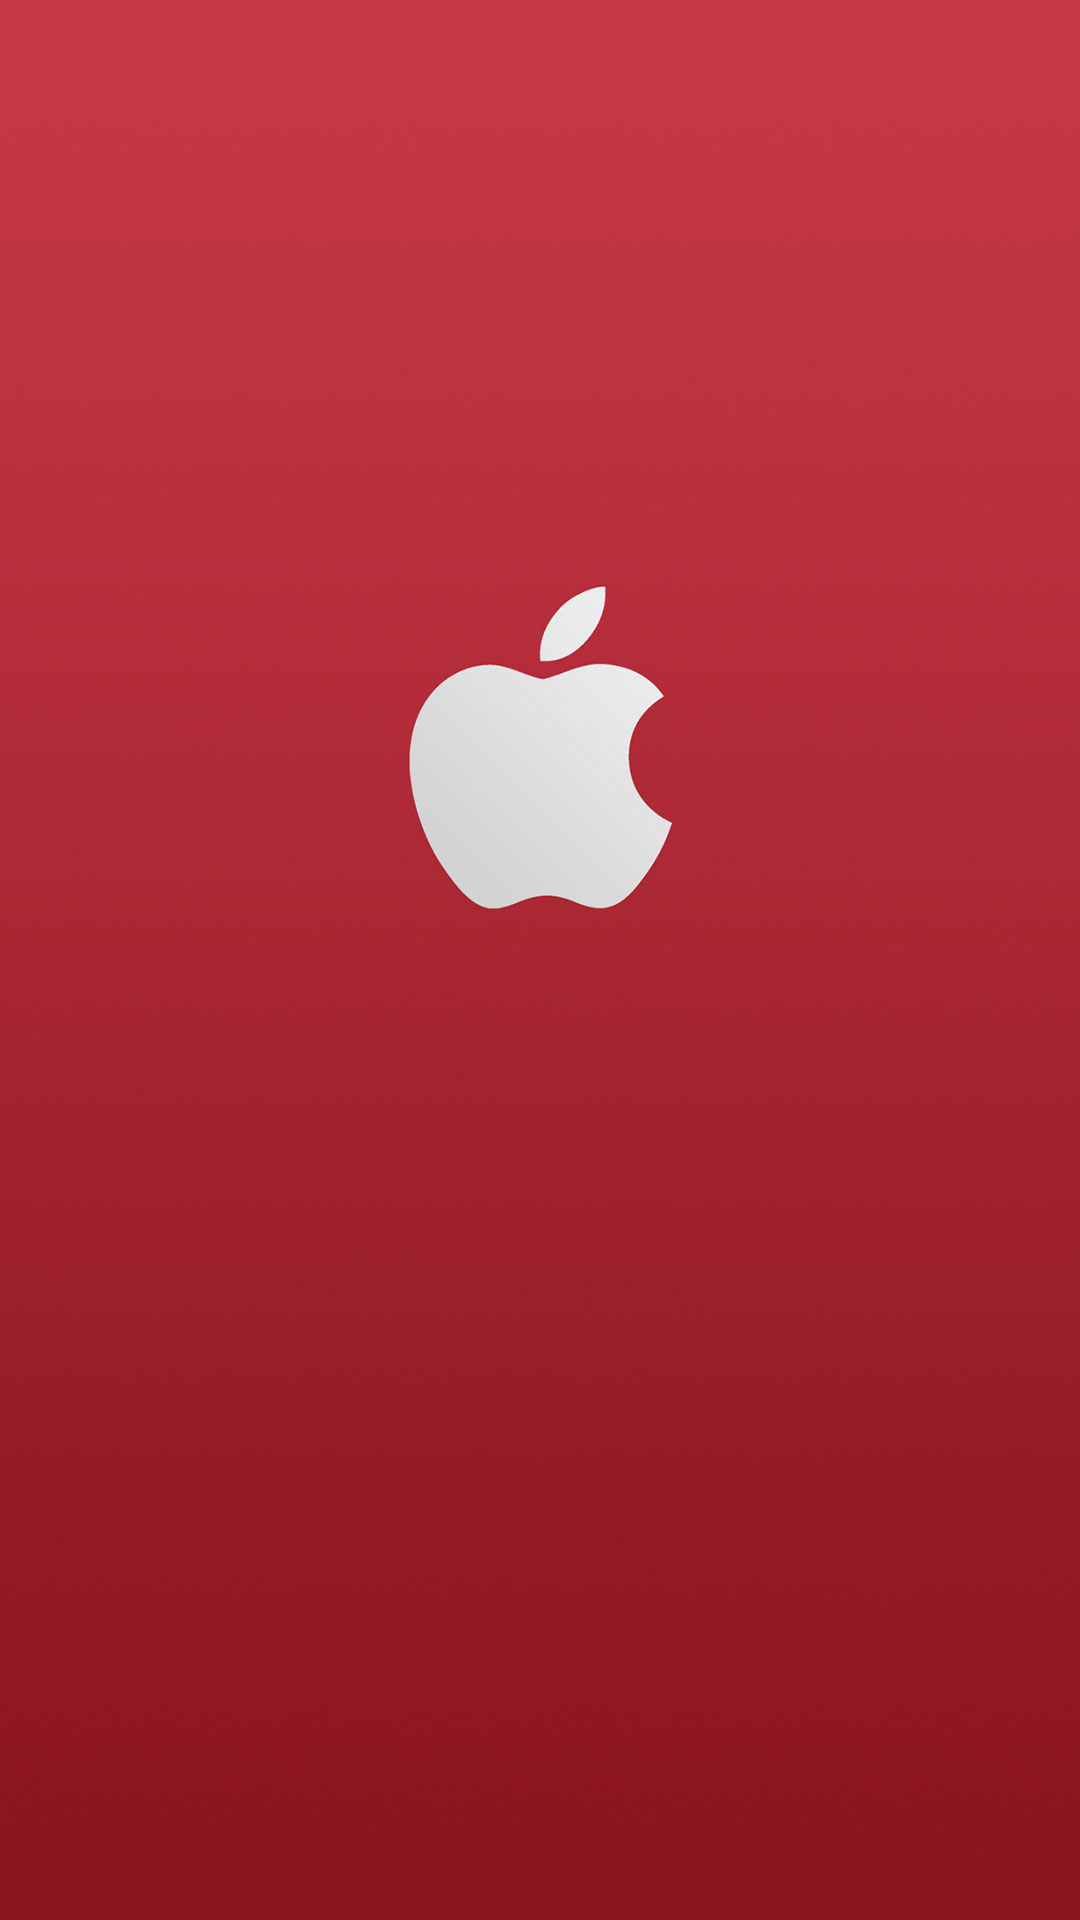 iPhone wallpaper product red logo iPhone 8 (PRODUCT) RED